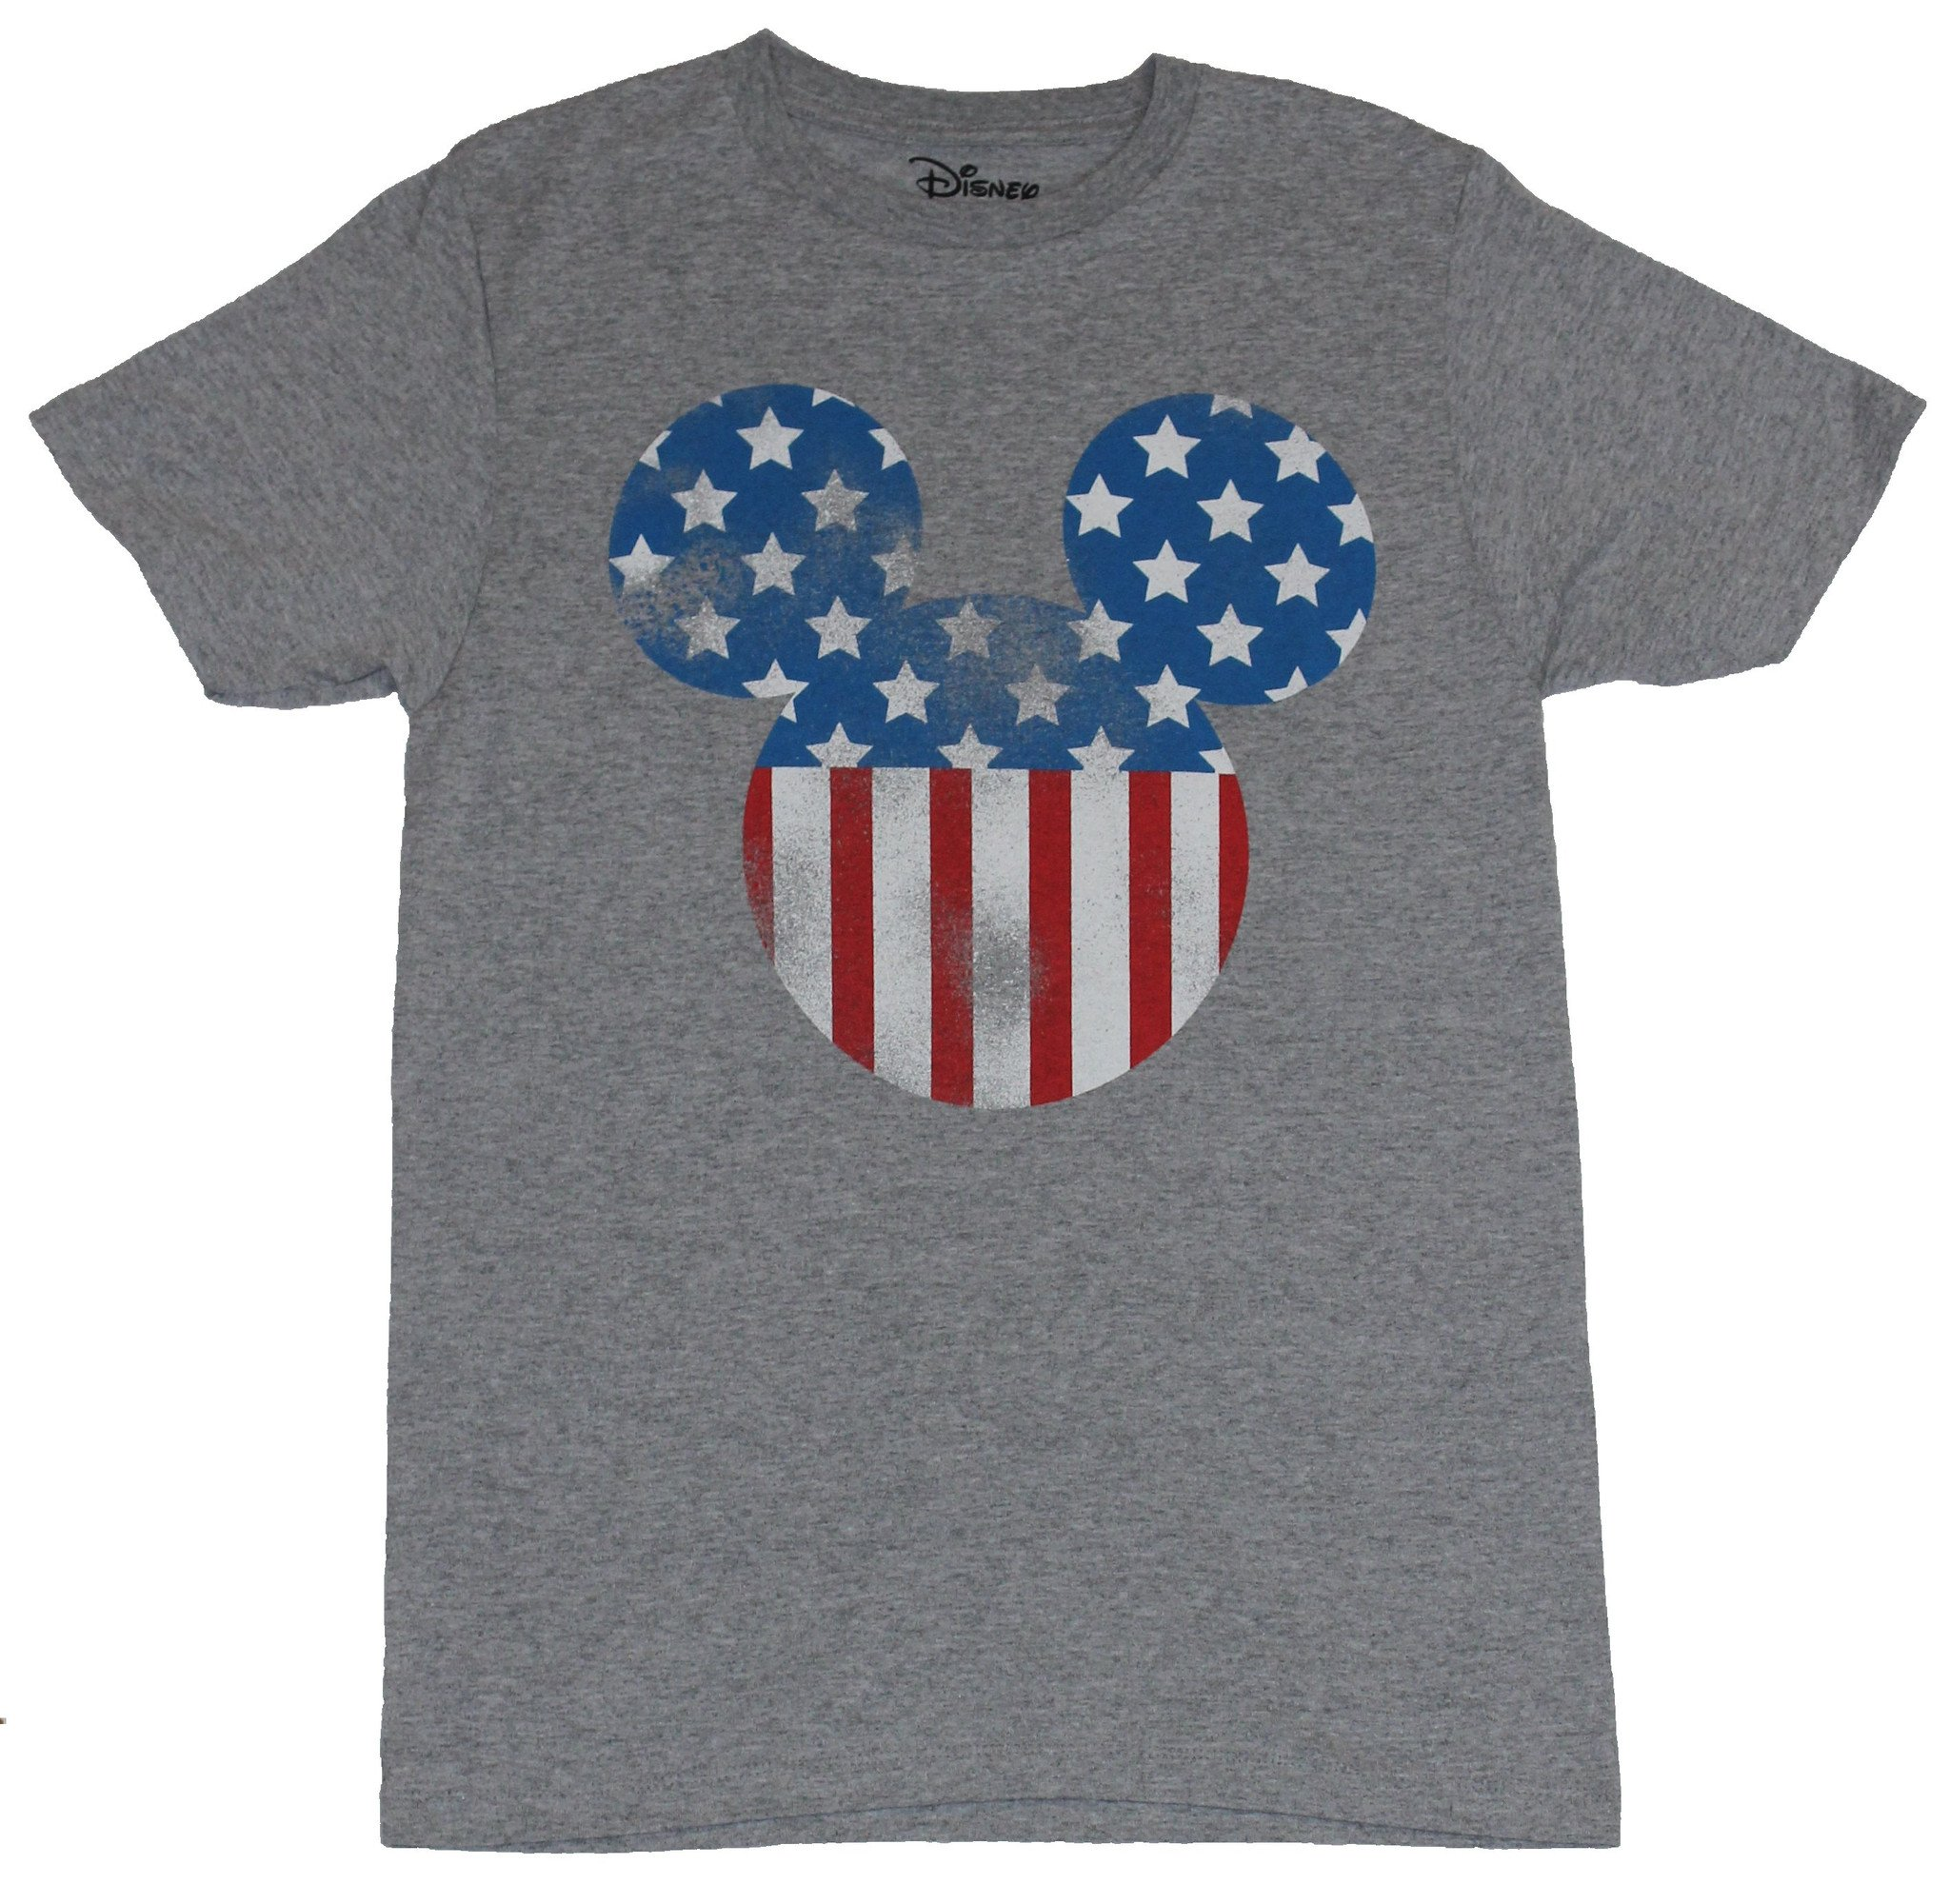 Mickey Mouse Mens T-Shirt -  Distressed Mickey Mouse American Flag style